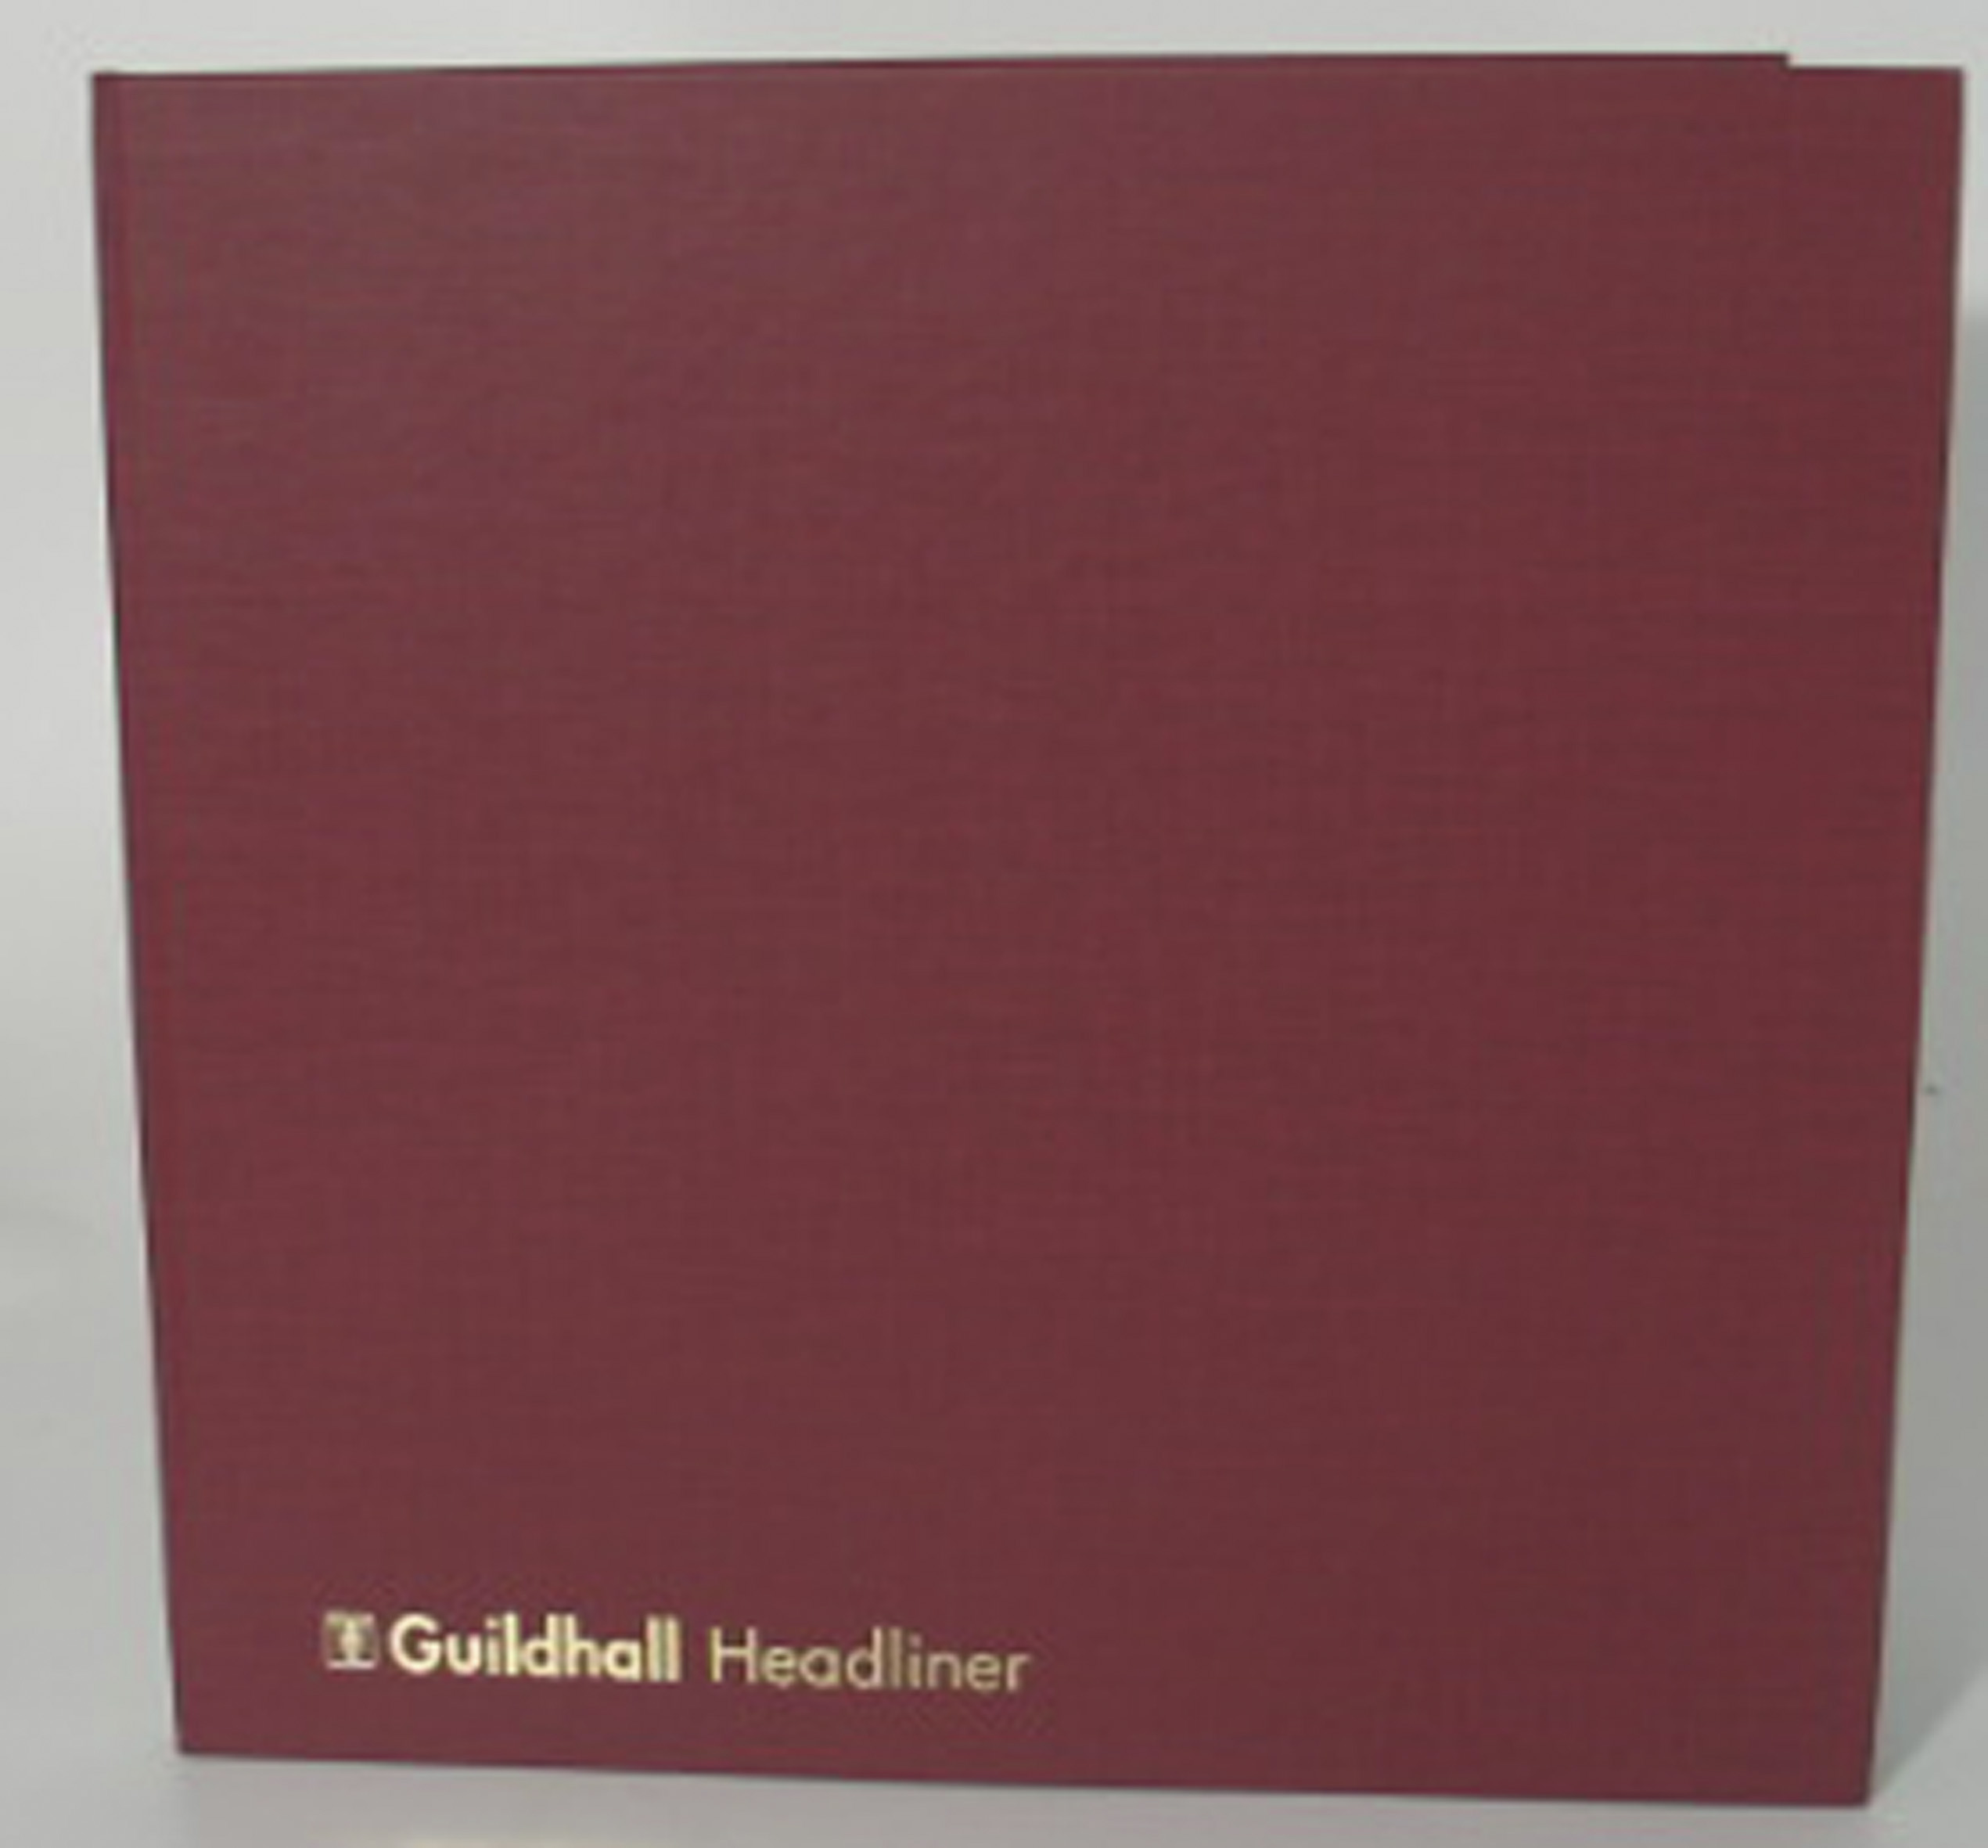 Guildhall Headliner Account Book 4 Debit